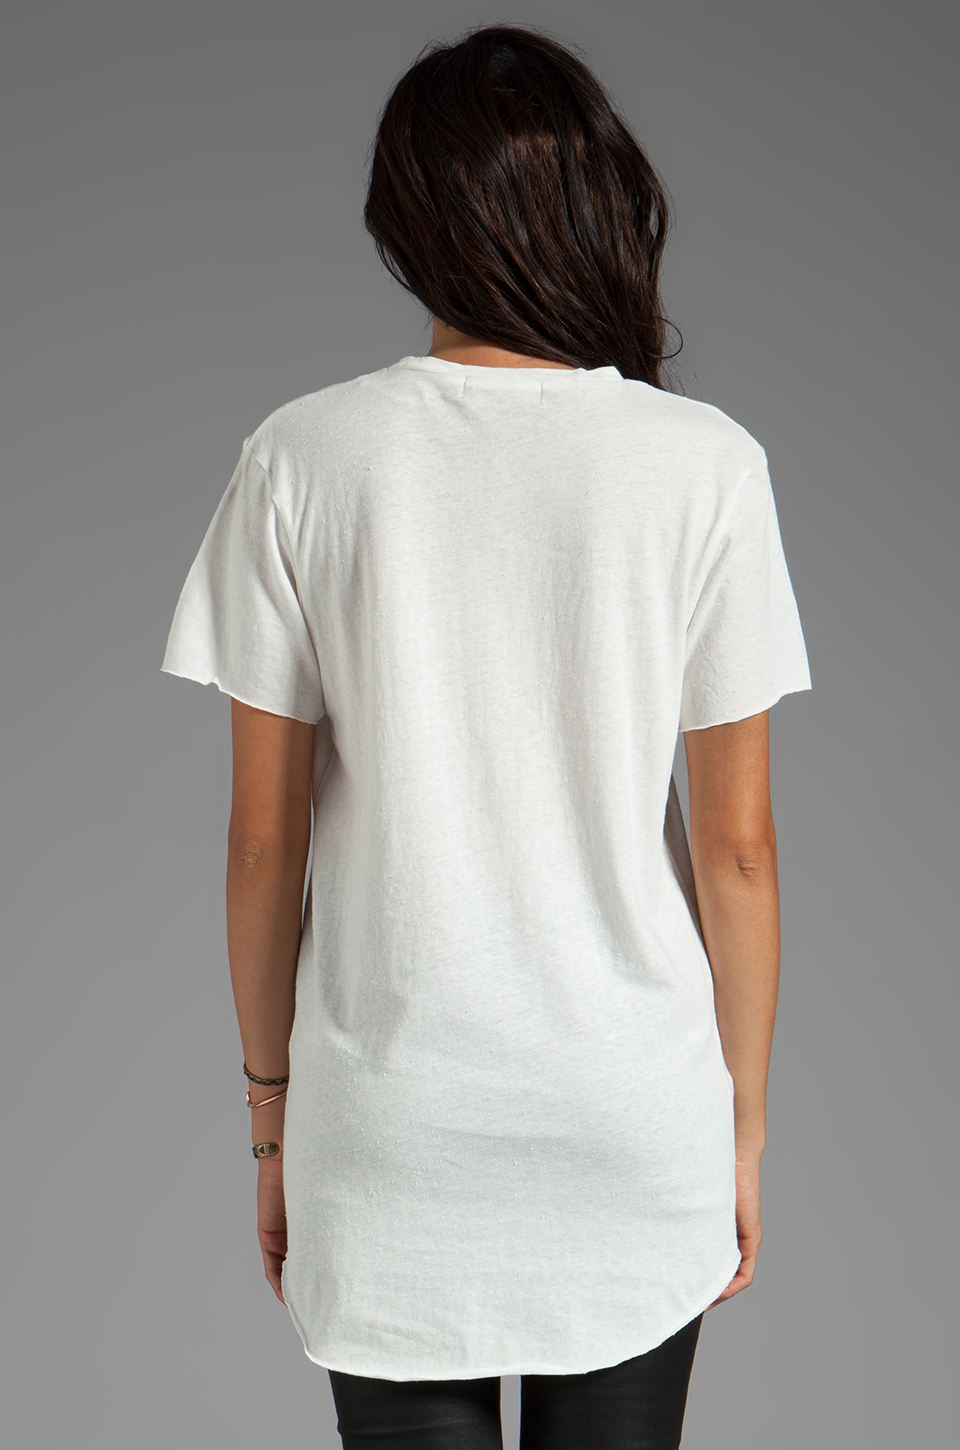 Evil Twin Wasted Tee in White